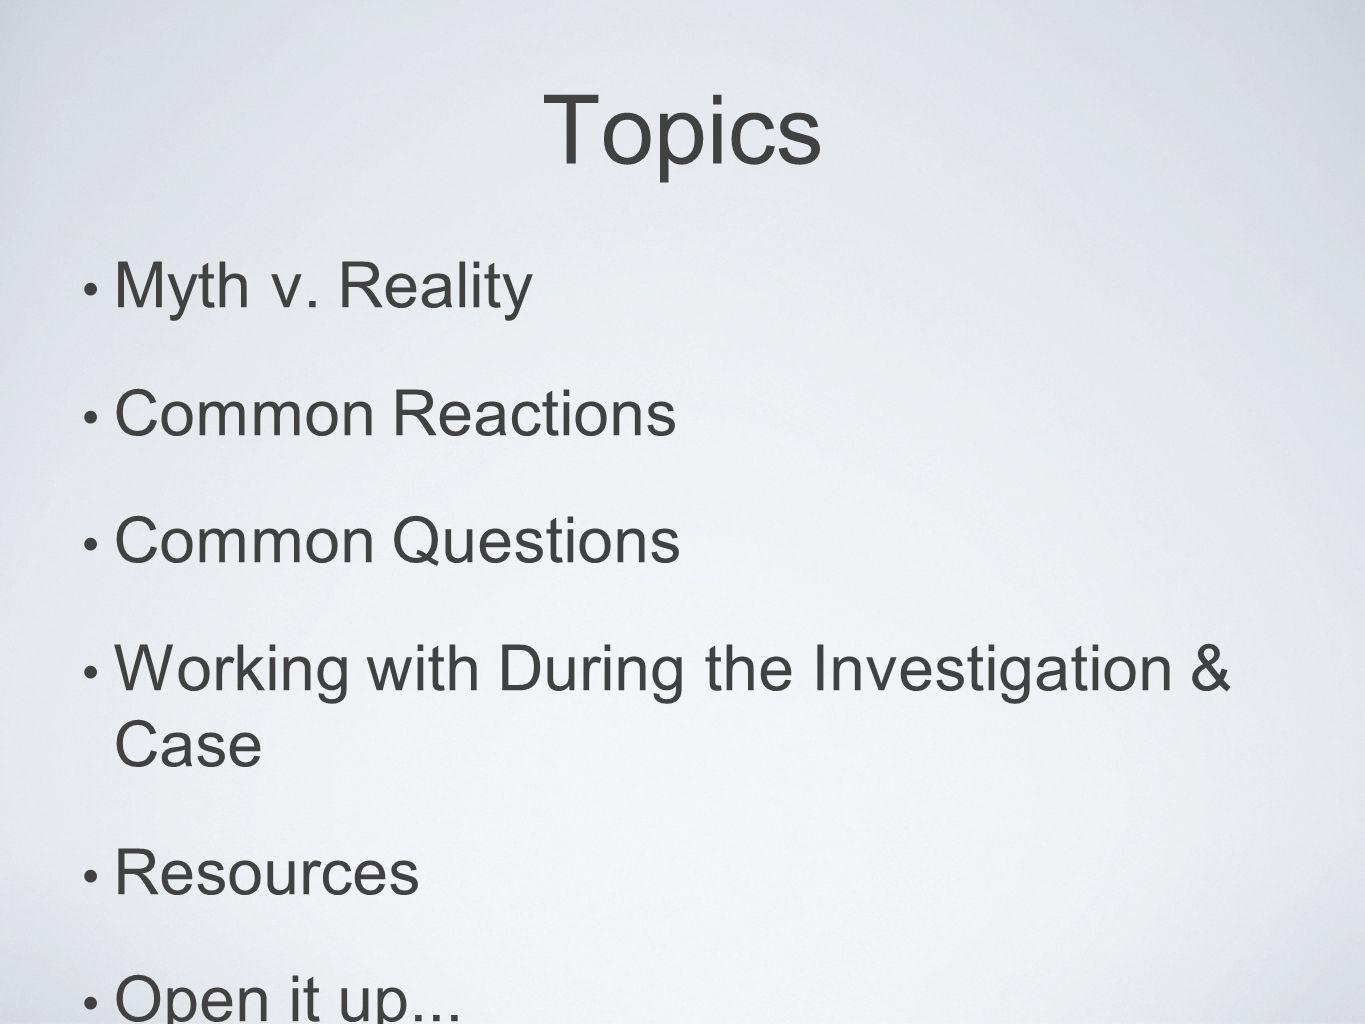 Topics Myth v. Reality Common Reactions Common Questions Working with During the Investigation & Case Resources Open it up...